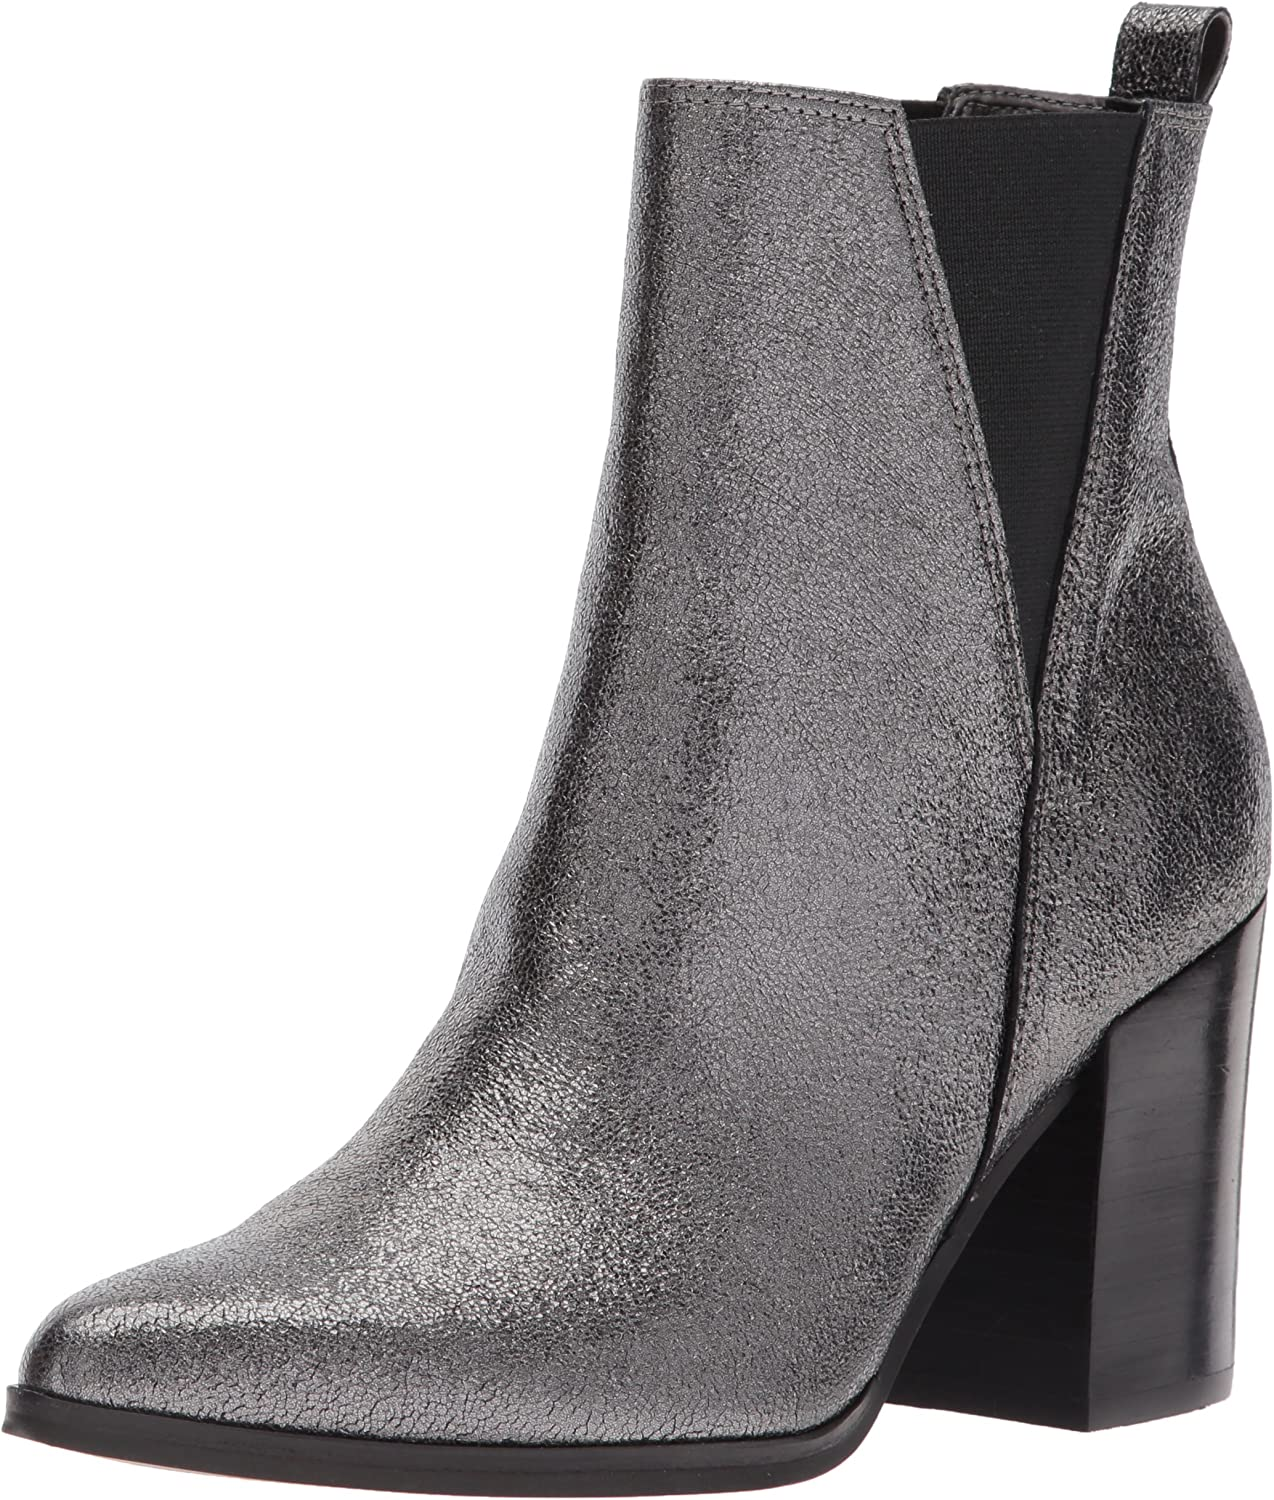 Ivanka Trump Womens Adela Ankle Boot